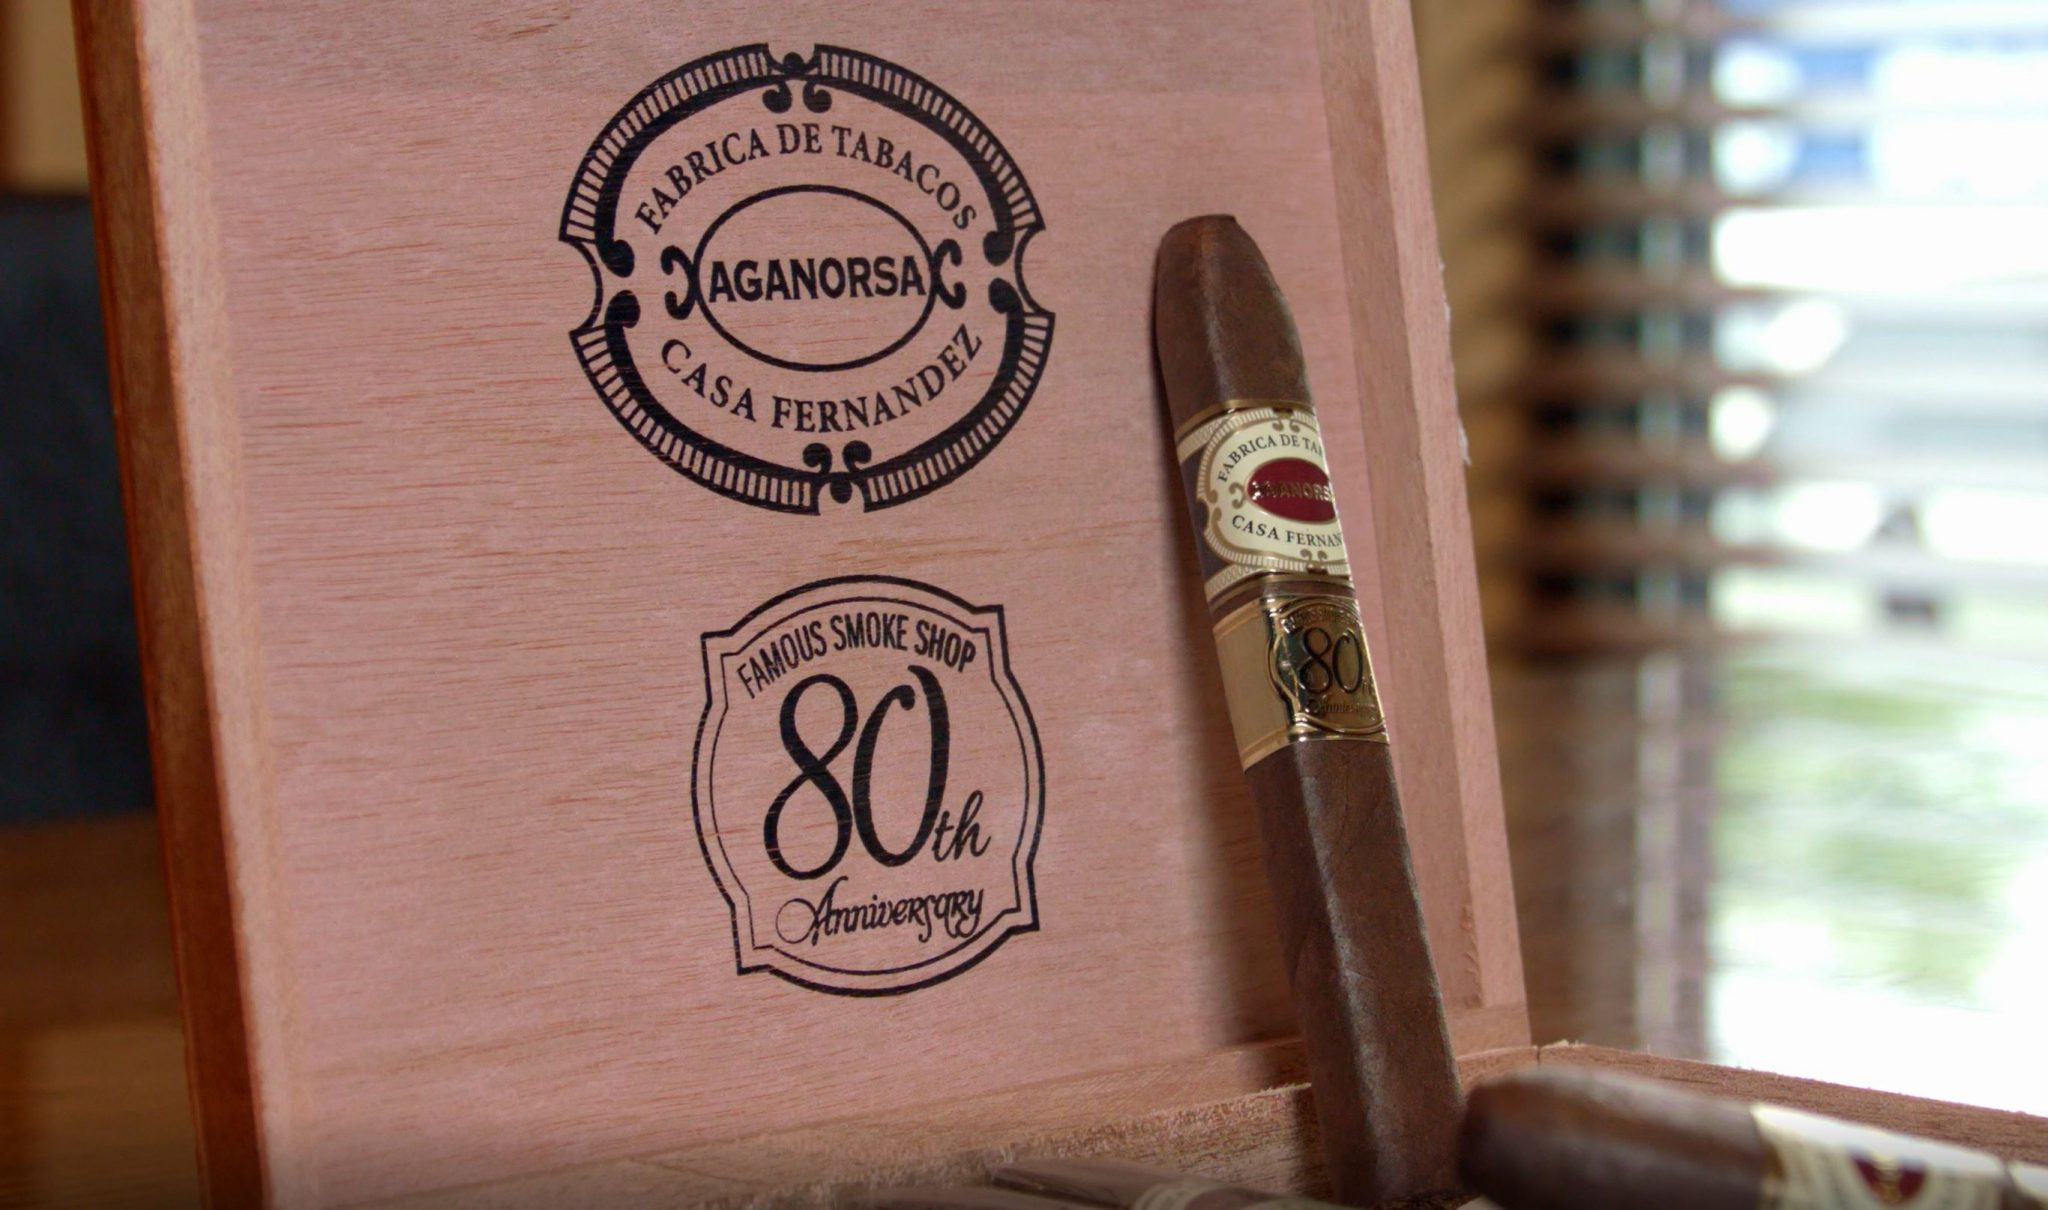 Aganorsa Leaf Famous 80th Anniversary Cigar Review at Famous Smoke Shop by Jared Gulick 2